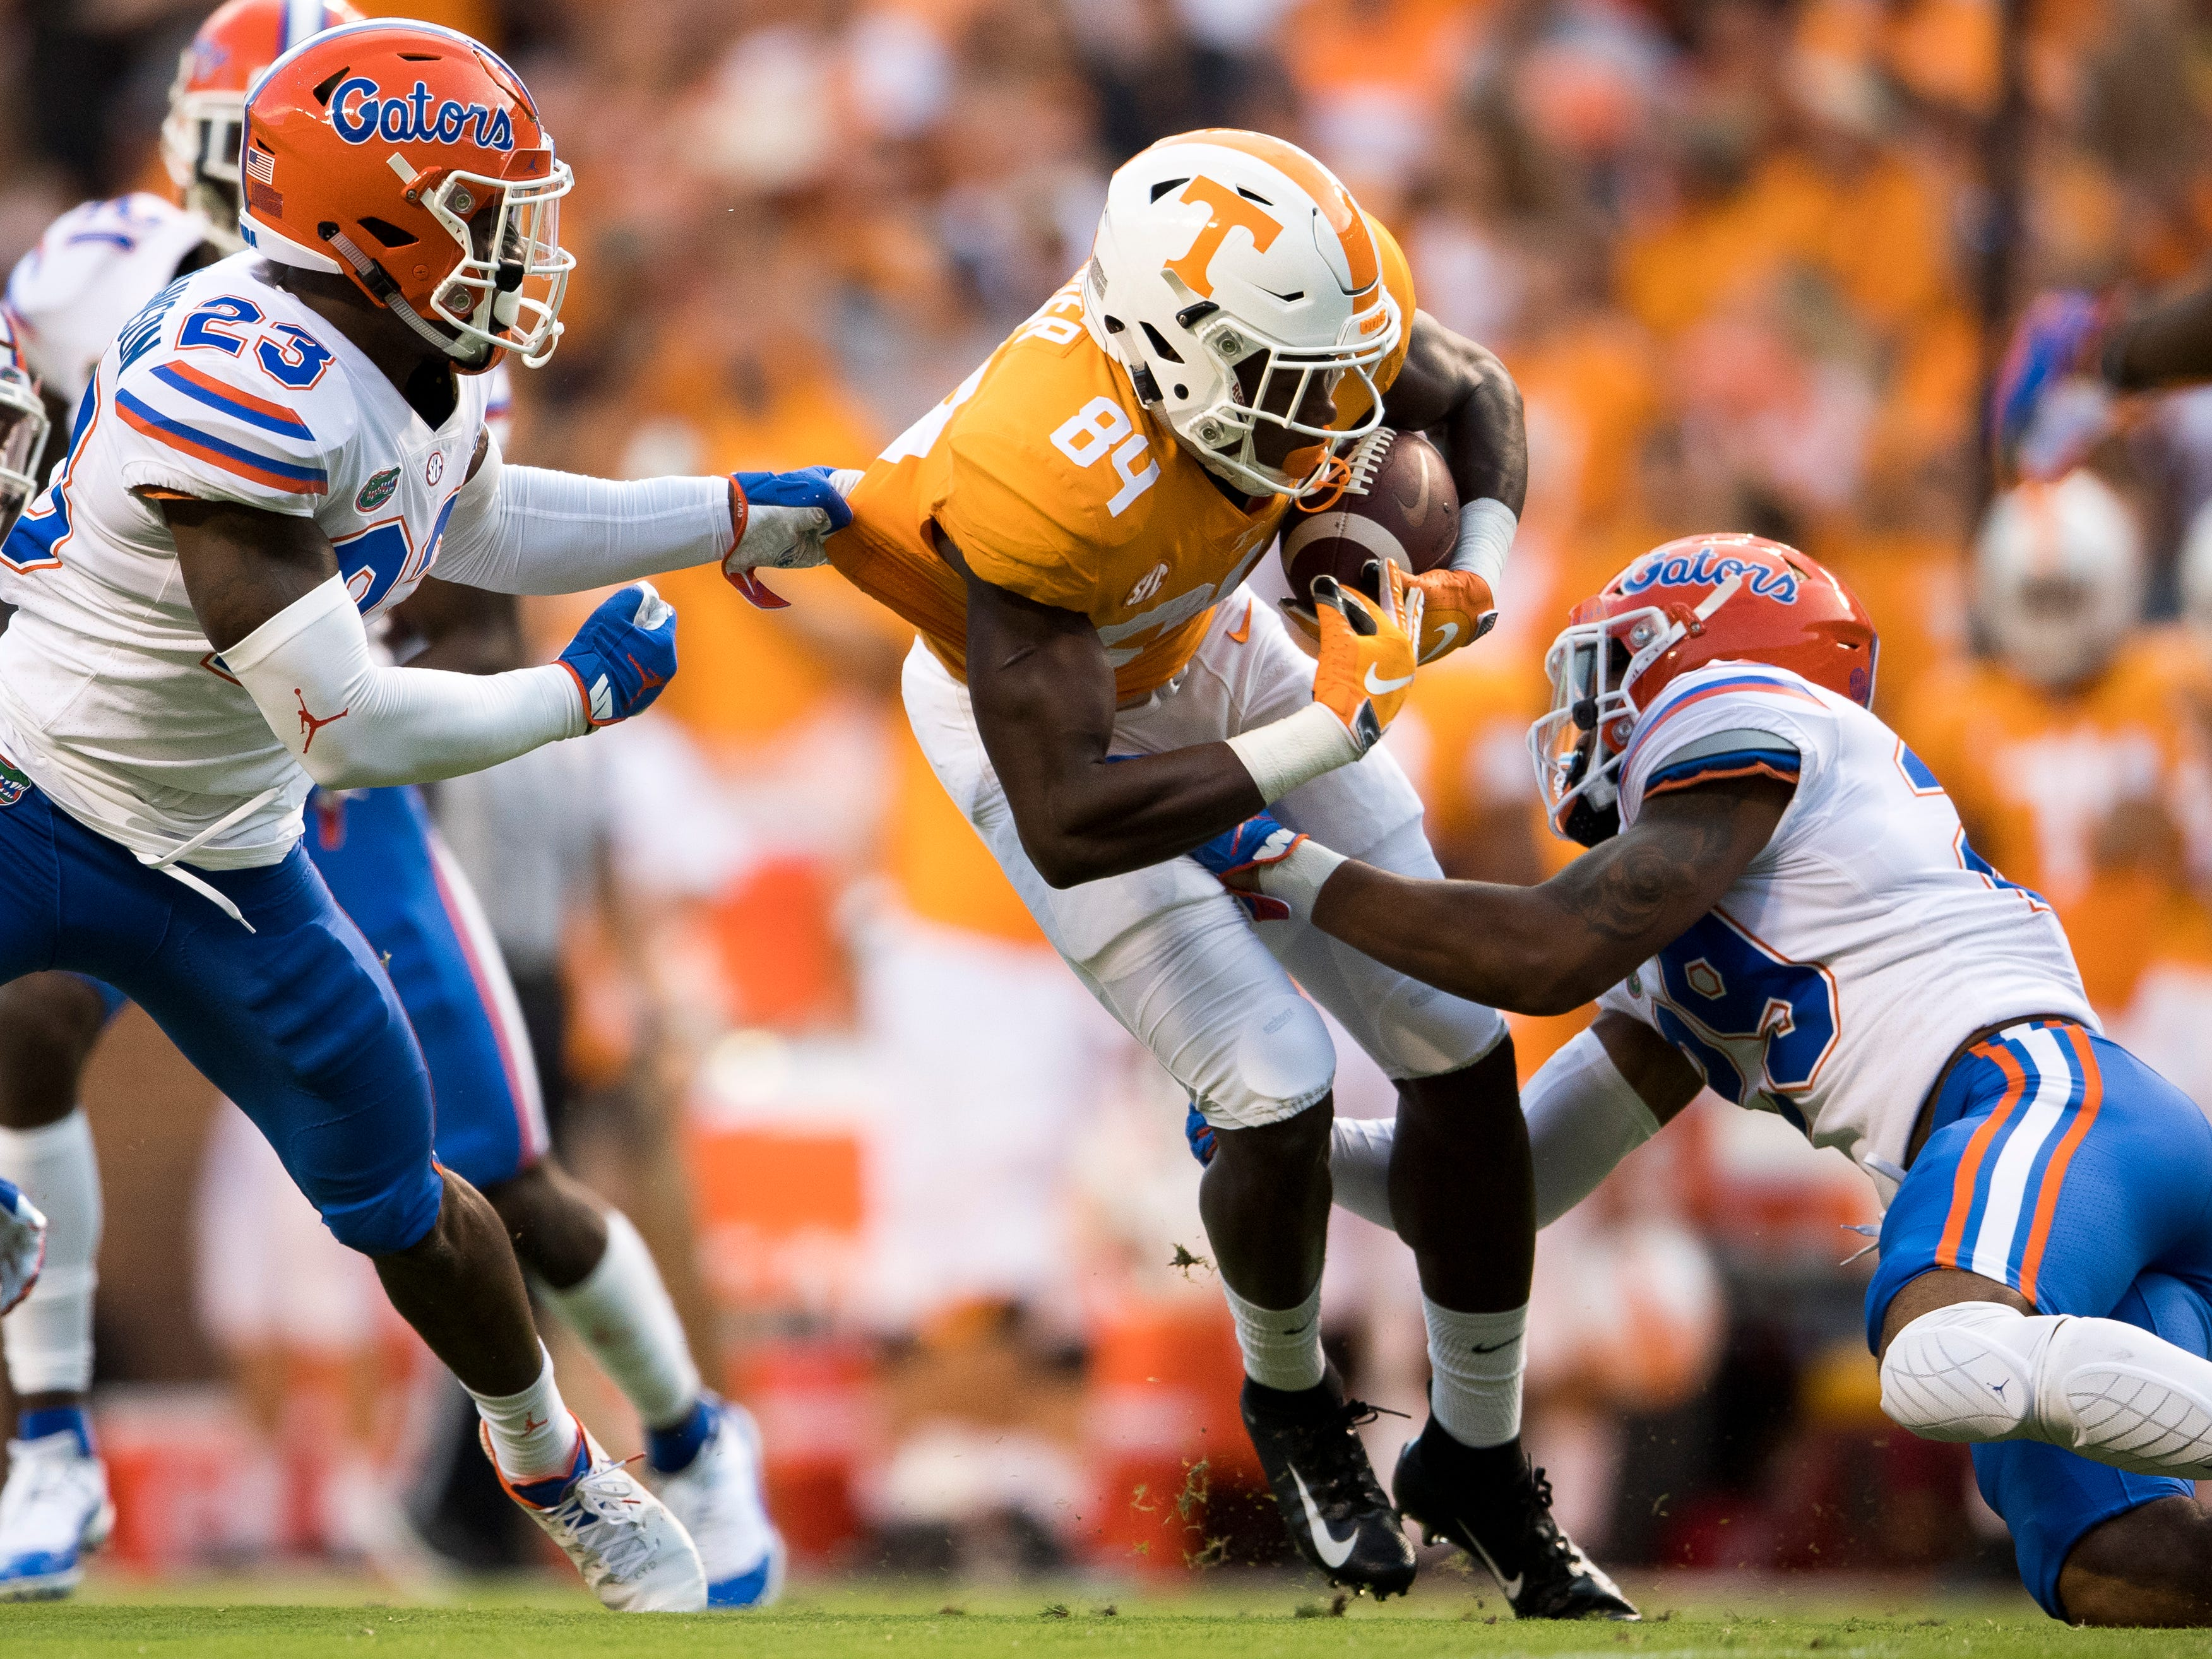 Tennessee wide receiver Josh Palmer (84) fights for extra yards during the Tennessee Volunteers' game against Florida in Neyland Stadium on Saturday, Sept. 22, 2018.